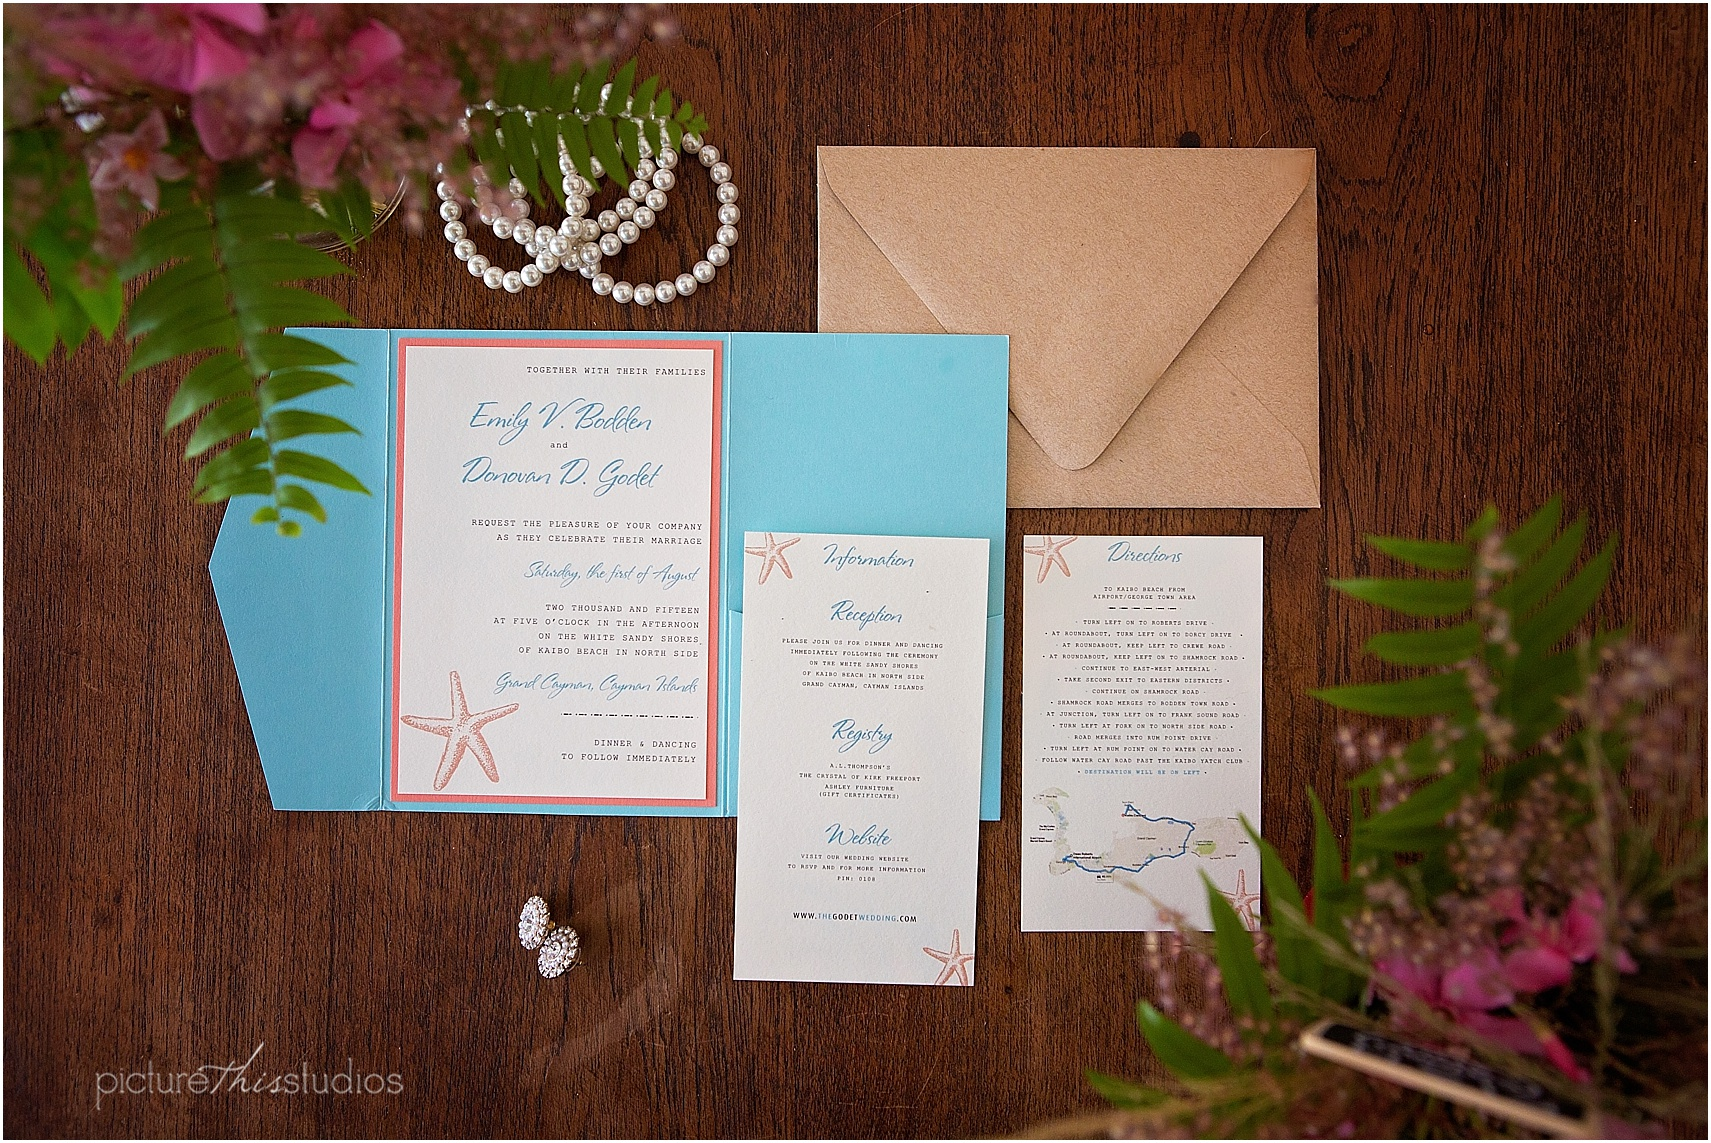 Kaibo cayman wedding